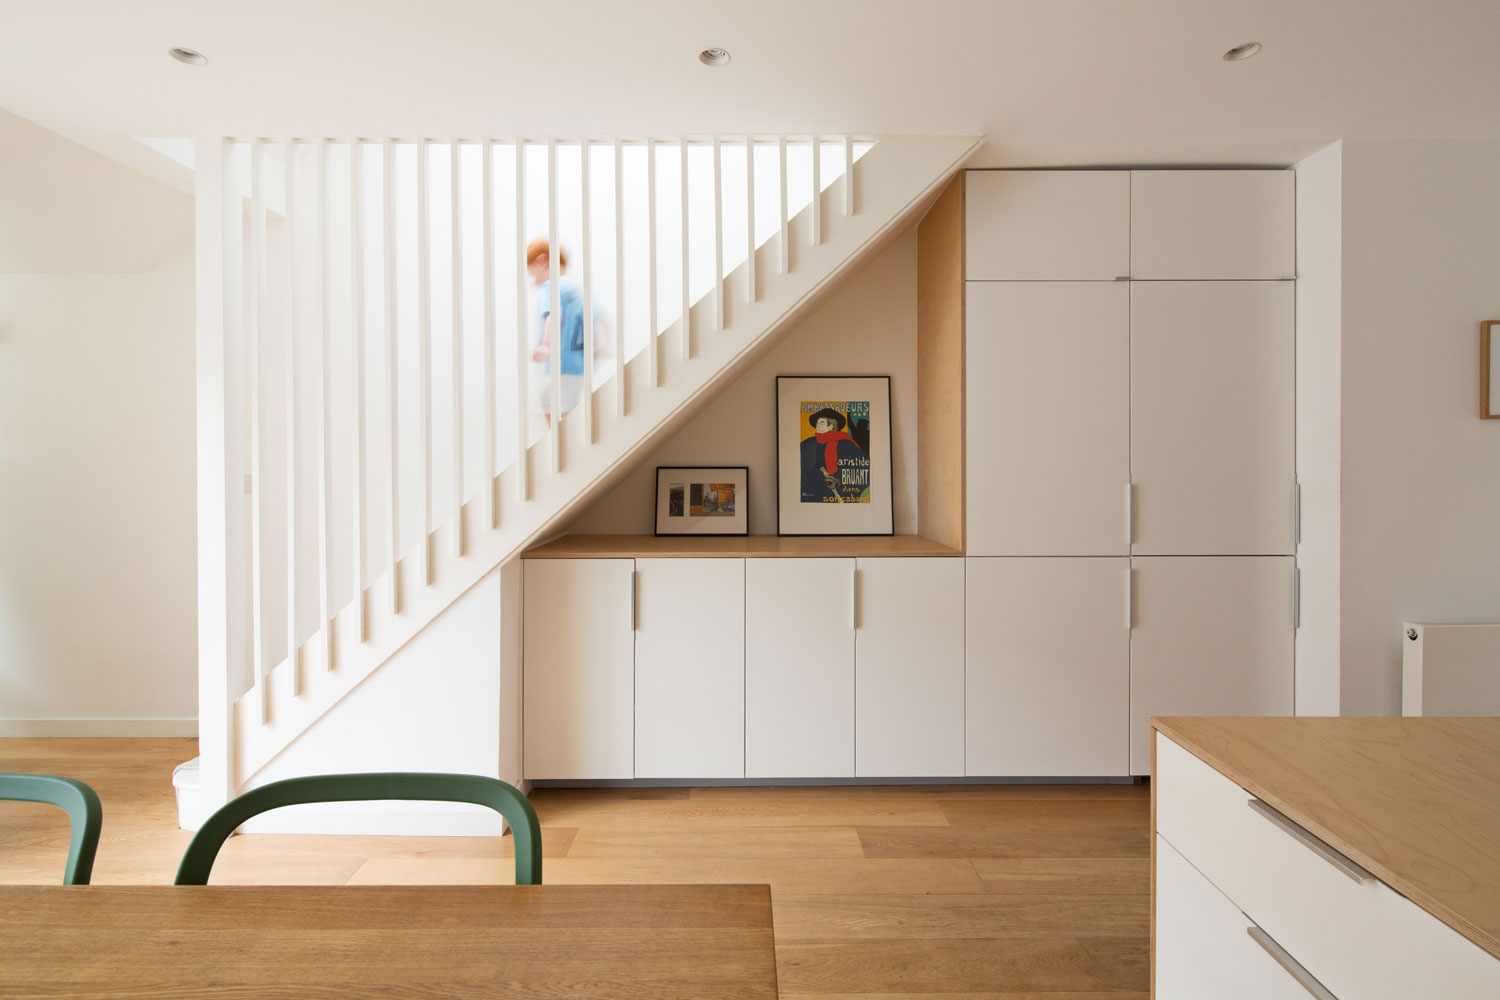 House-Extension-Cost-2020-Stairs